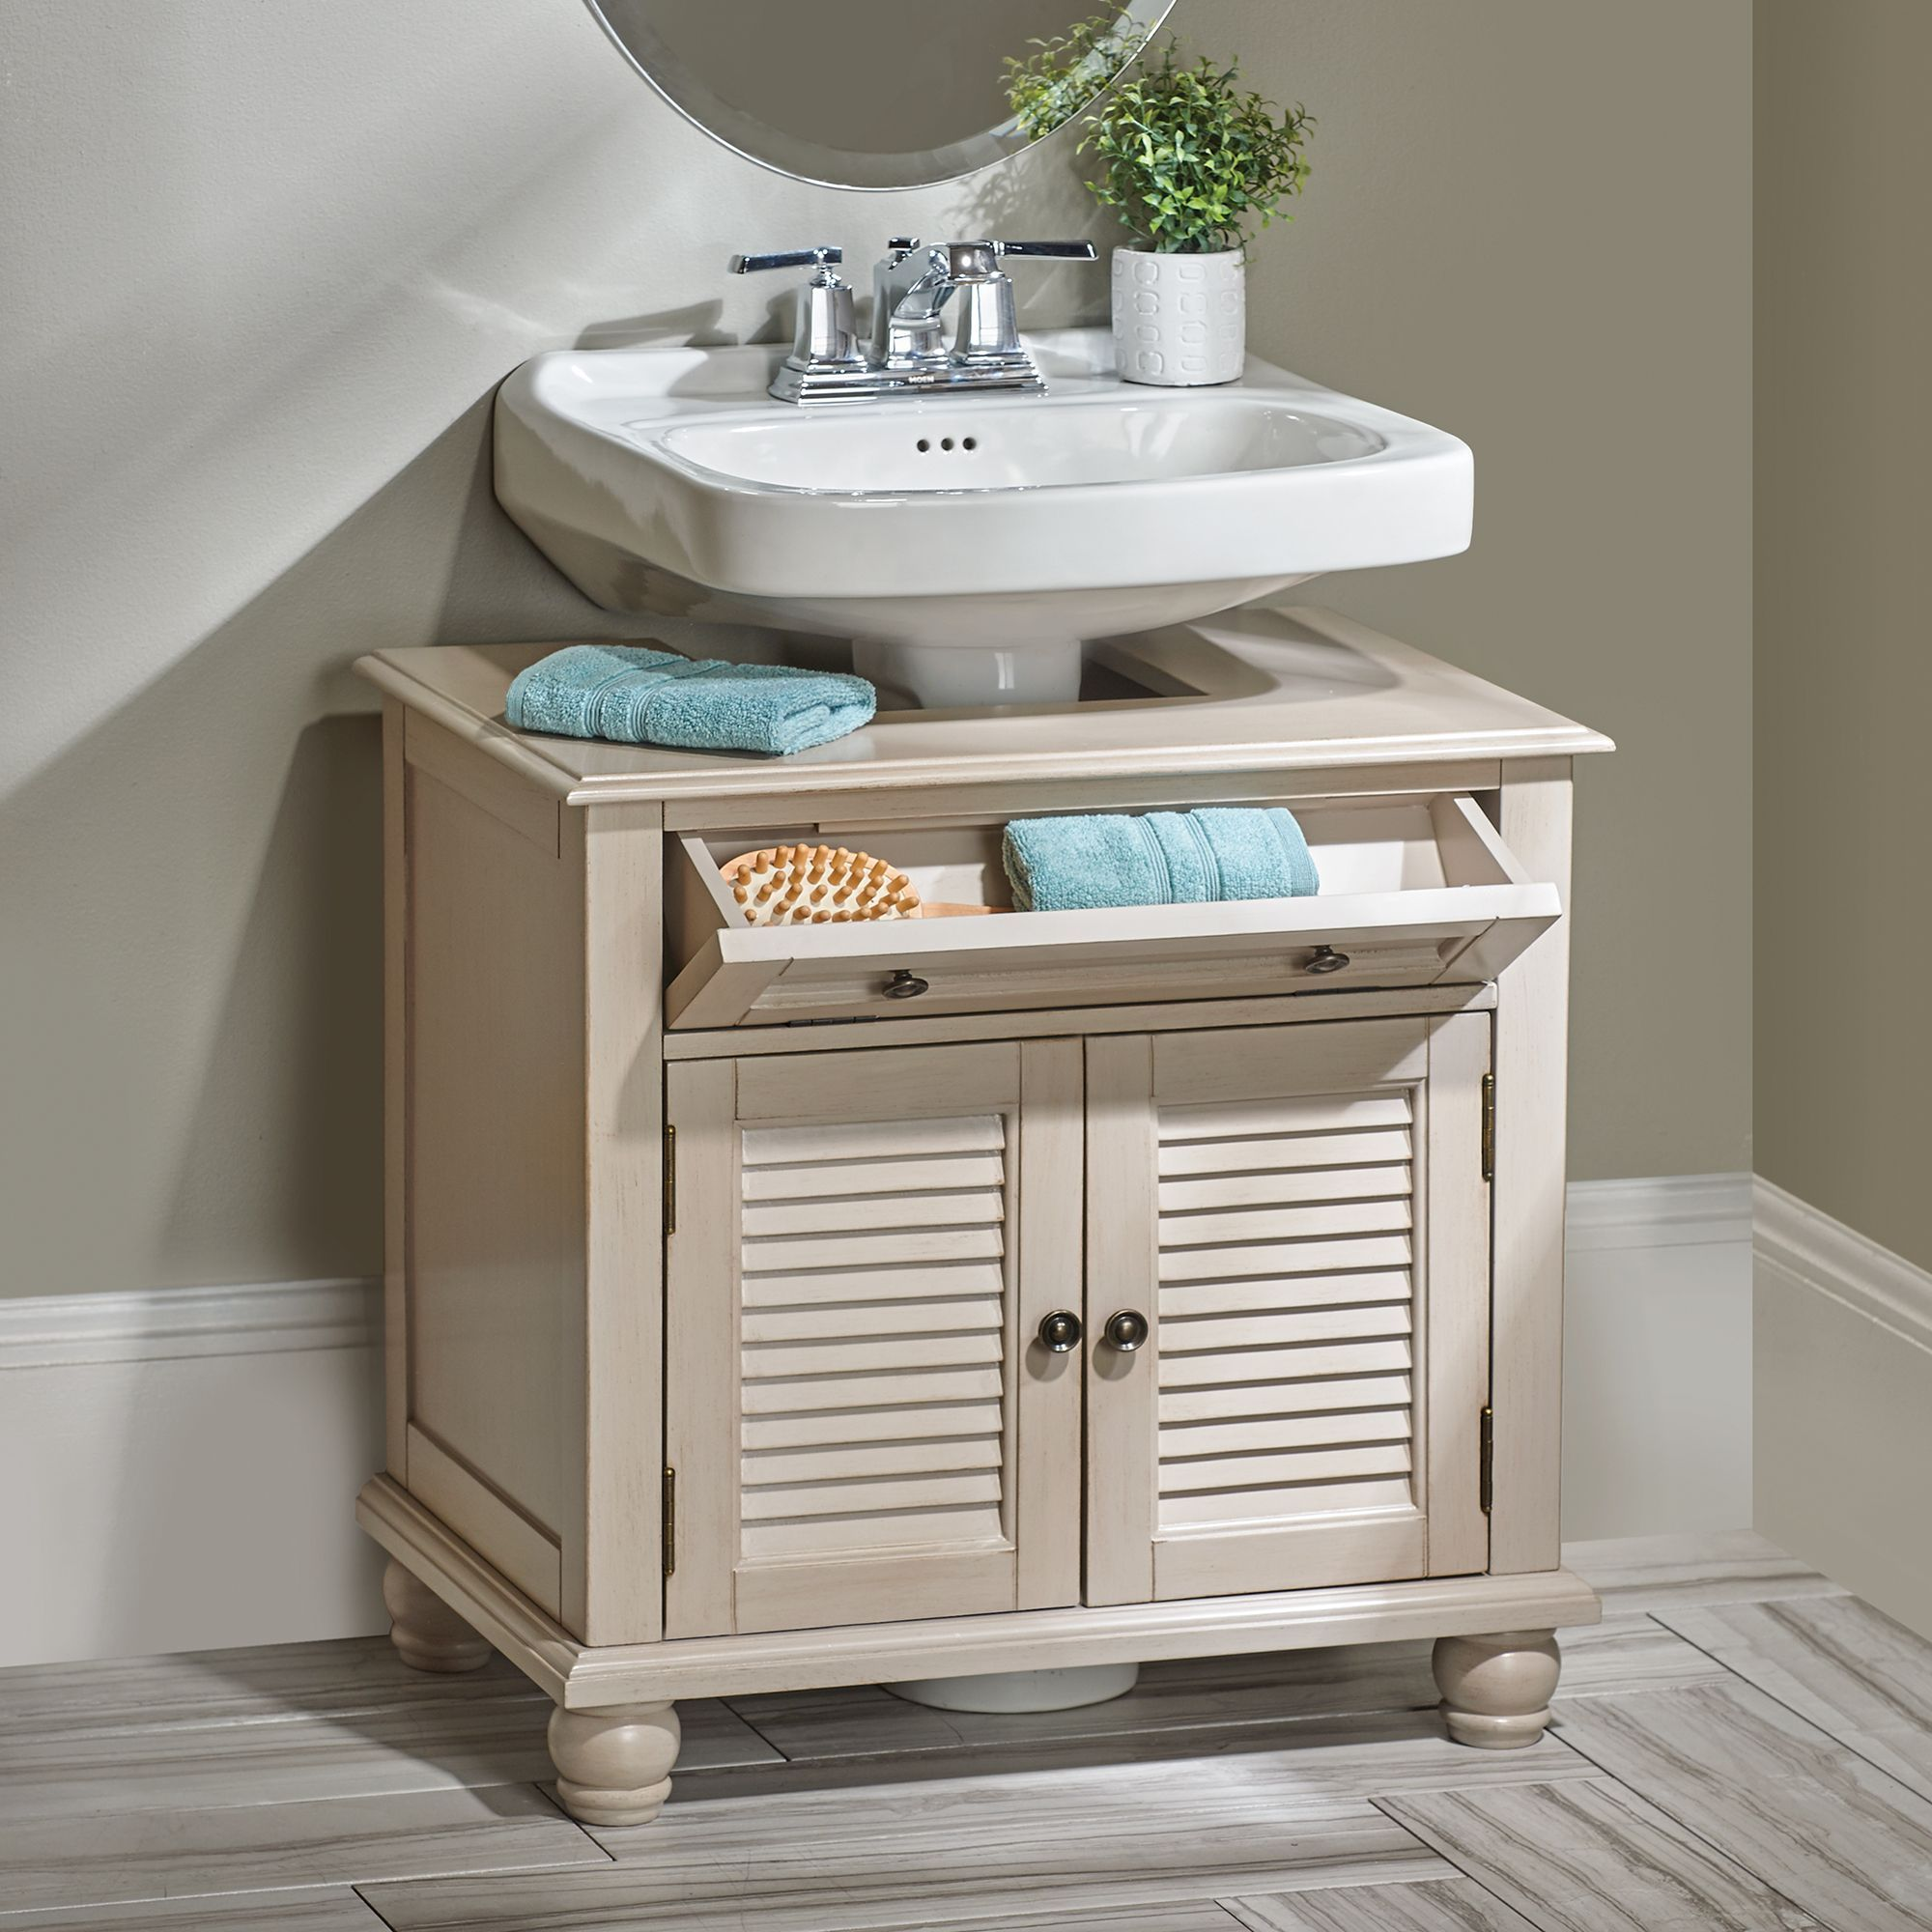 Utilize That E Around Your Pedestal Sink With This Stylish Cabinet It Provides Ample Bathroom Storage And Comes In 2 Neutral Colors To Suit